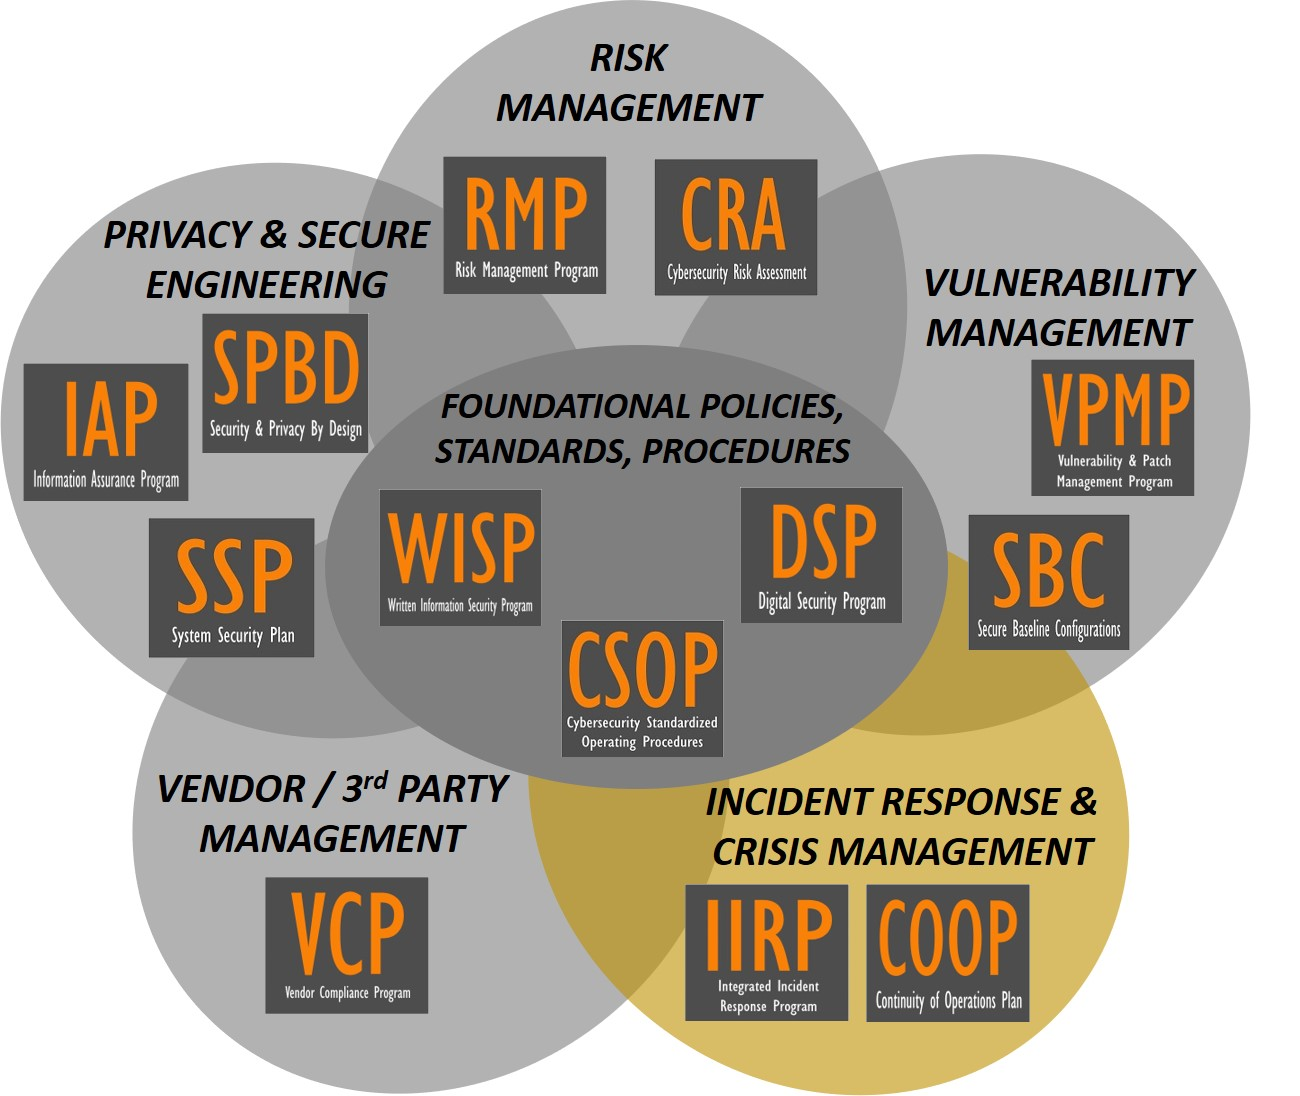 product-selection-2020.1-cybersecurity-audit-preparation-incident-response-plan-program-template.jpg